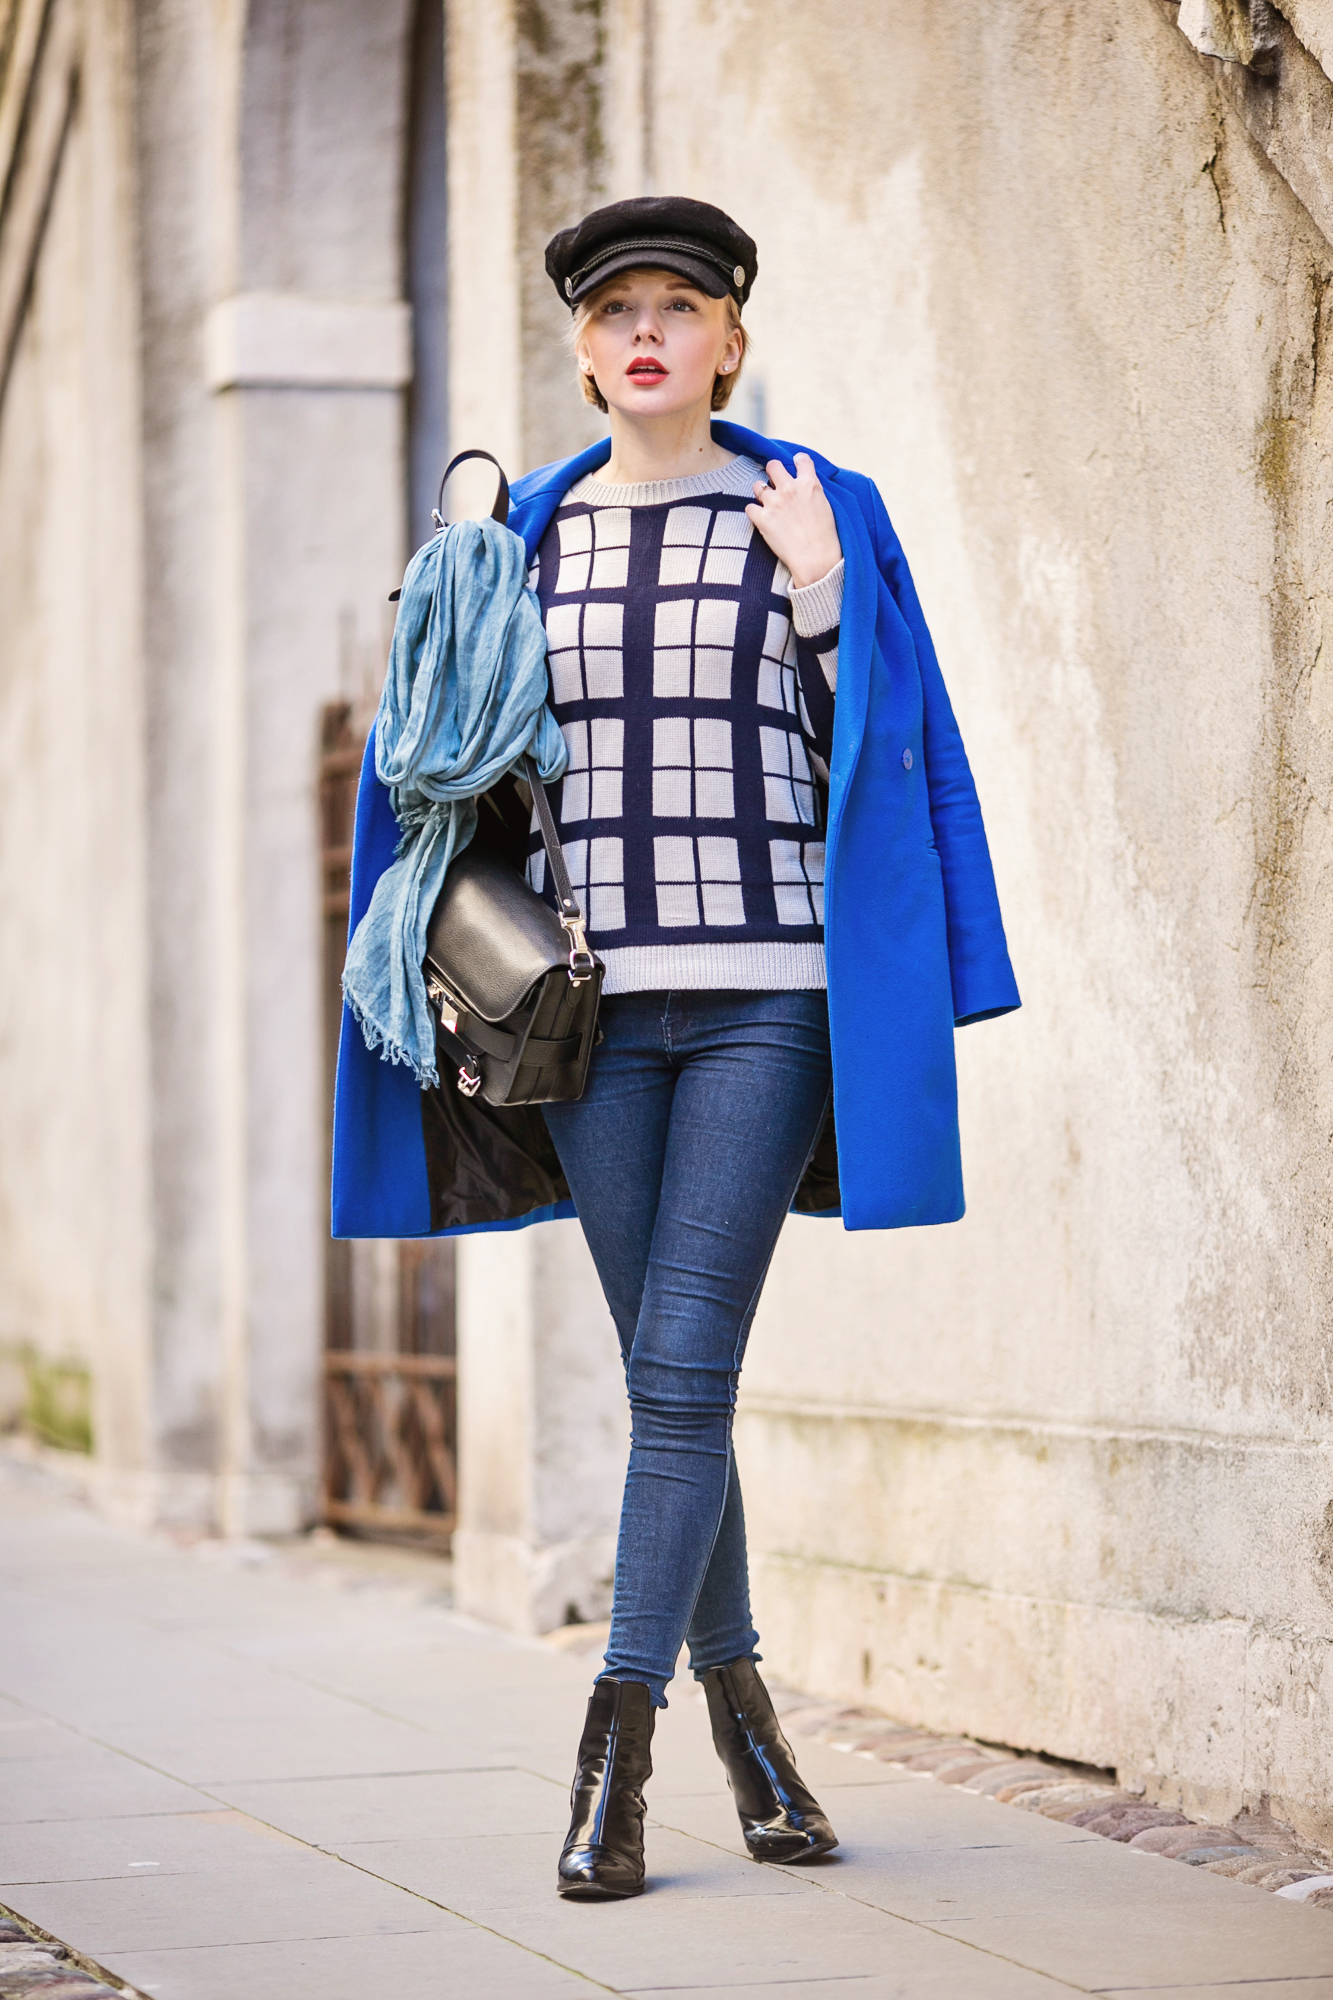 darya kamalova thecablook russian italian fashion bogger street style trend hm paris collection hat asos cobalt blue coat dr denim jeans ps11 proenza schouler bag bergamo cita alta centro storico italia italy-22 copy